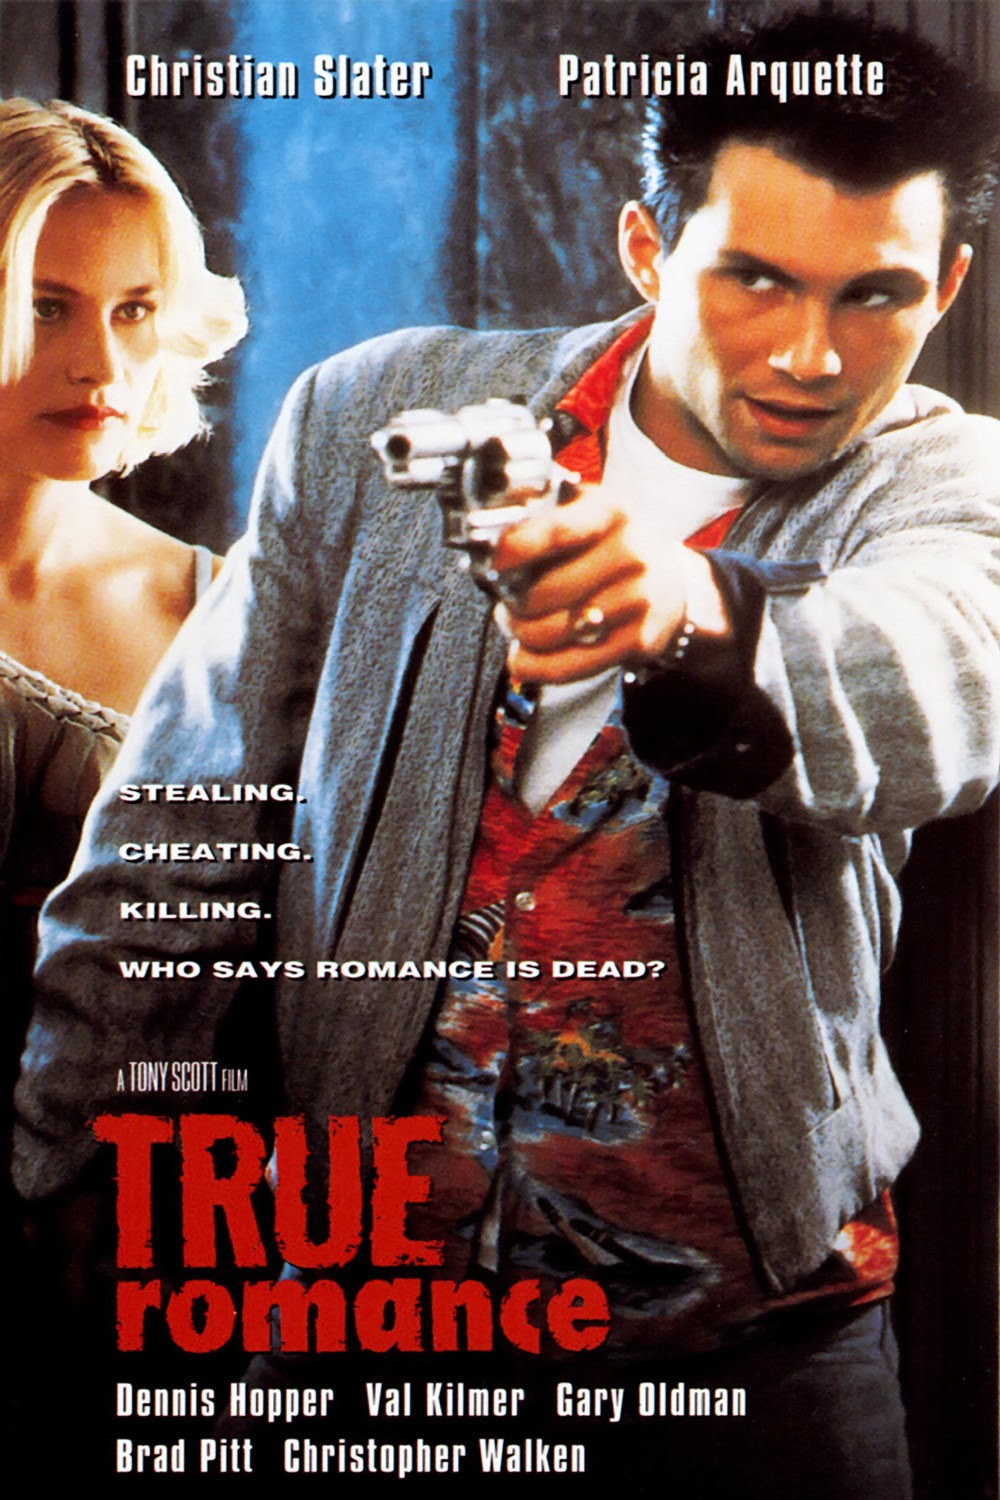 a review of the movie true romance See opinions and rankings about true romance across various lists and topics  #31 of 46 famous movie monologues 89k votes this list of the best movie monologues.